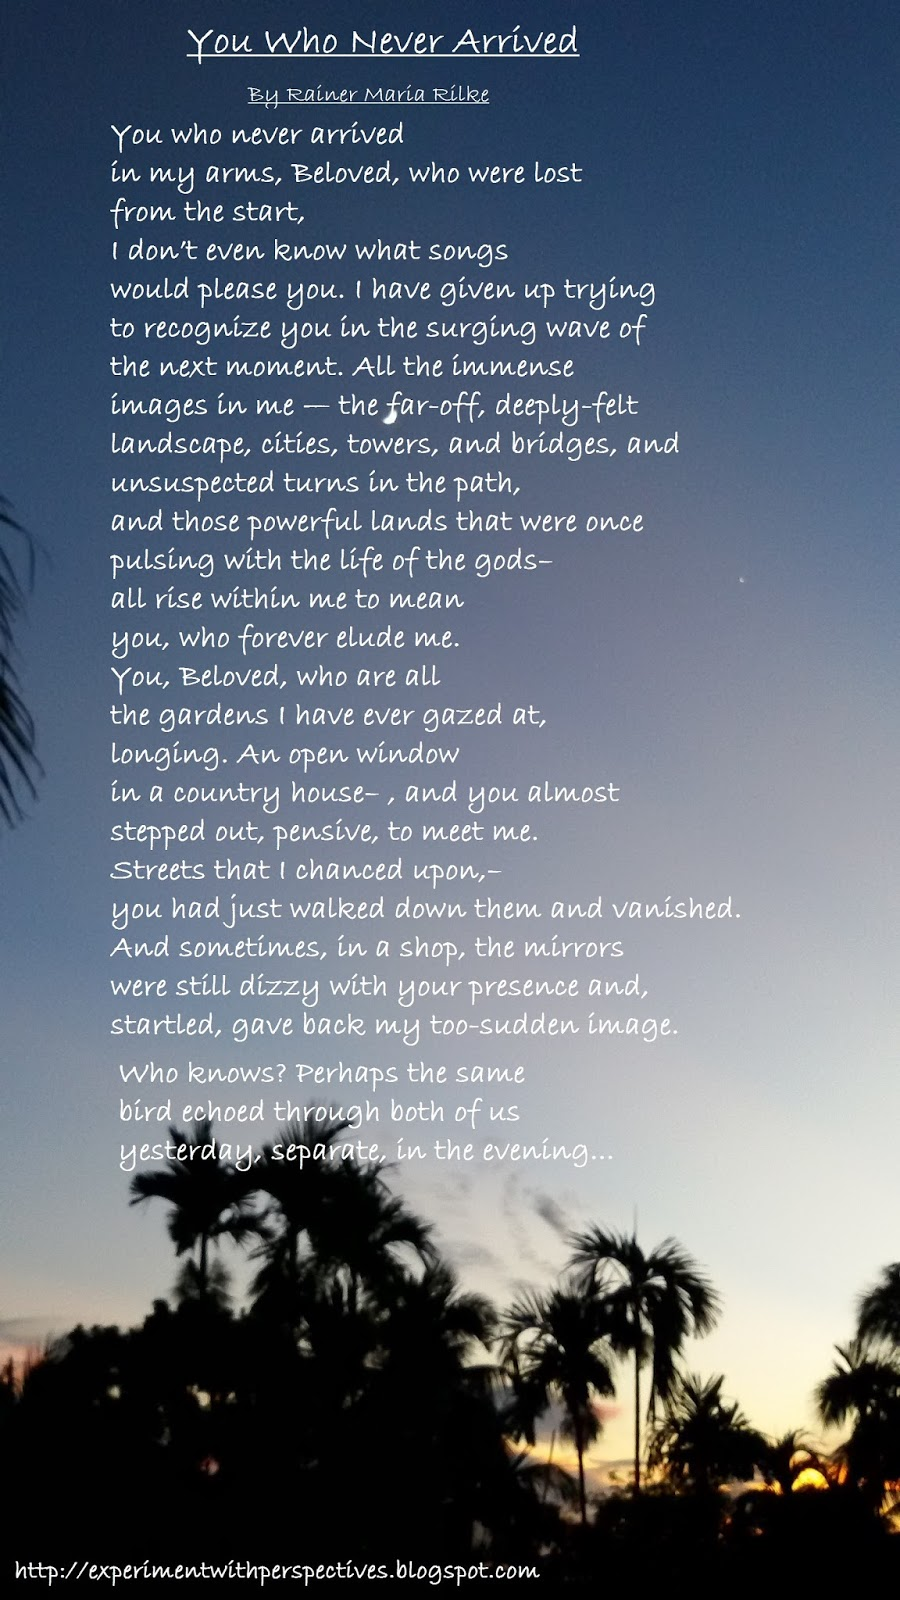 Can someone please help me analyze this poem?